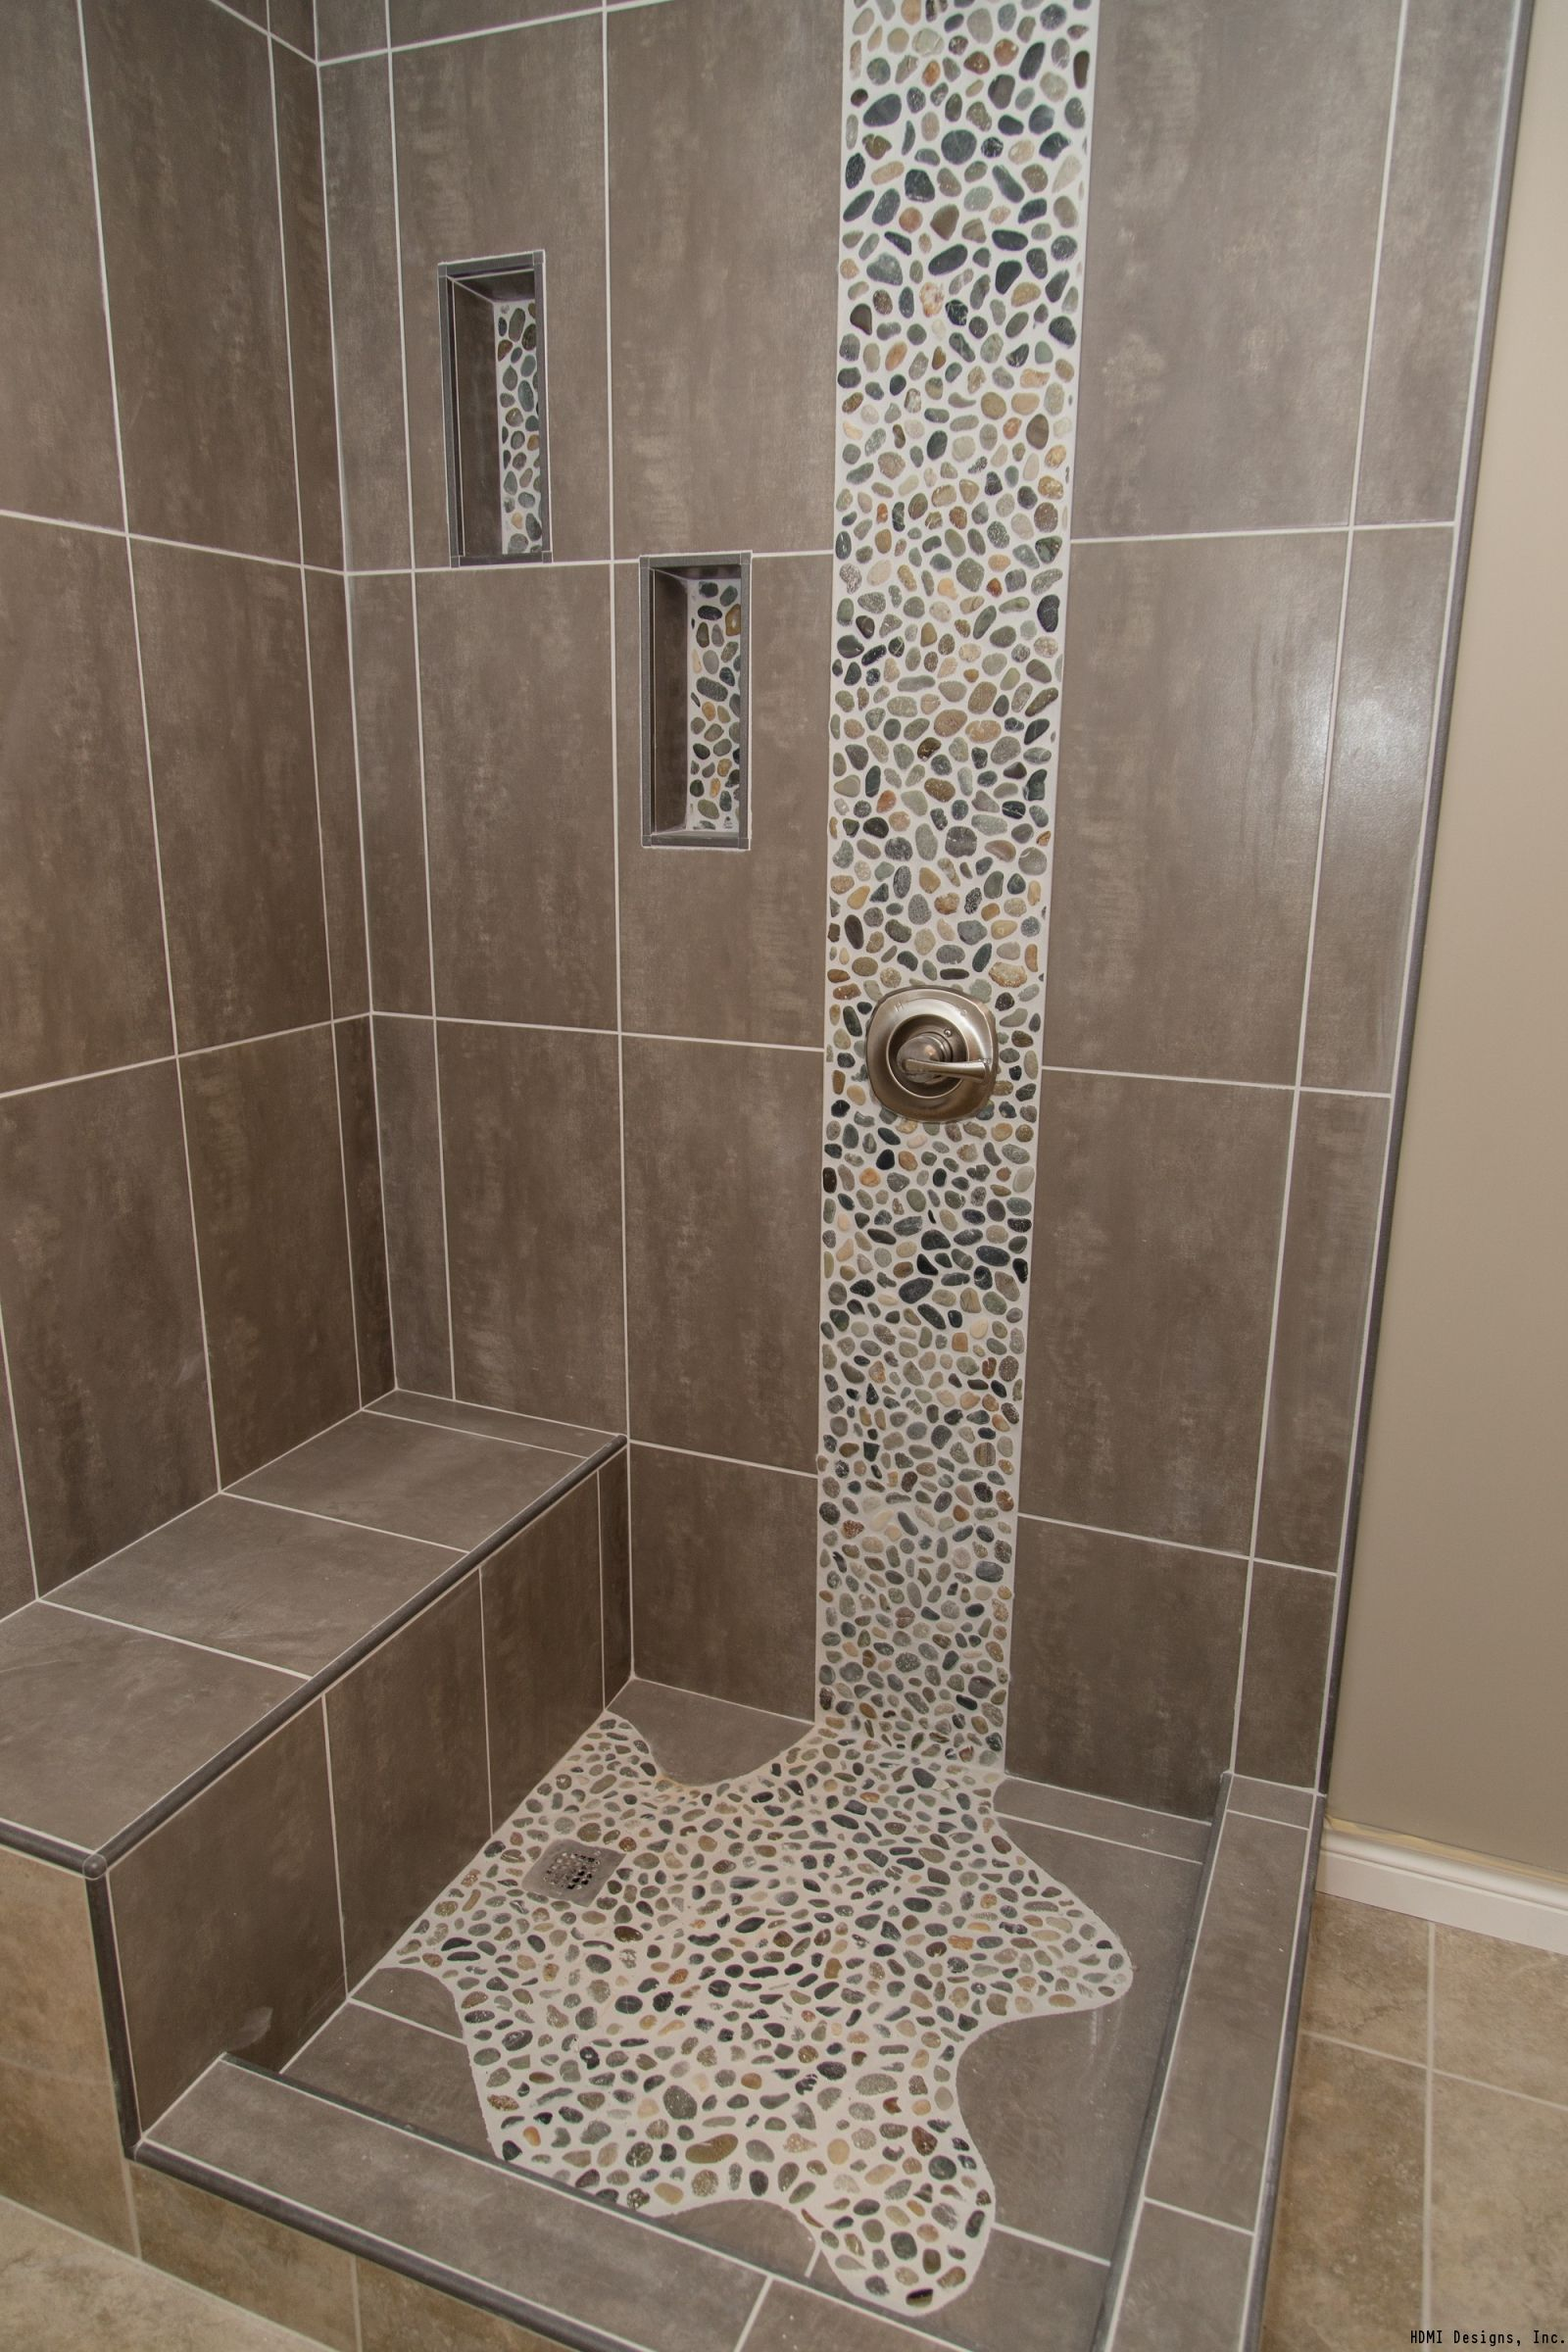 Spruce Up Your Shower By Adding Pebble Tile Accents Click The Pin To Get Started On Your Next Bathroom Remode Bathroom Remodel Shower Tile Remodel Shower Tile